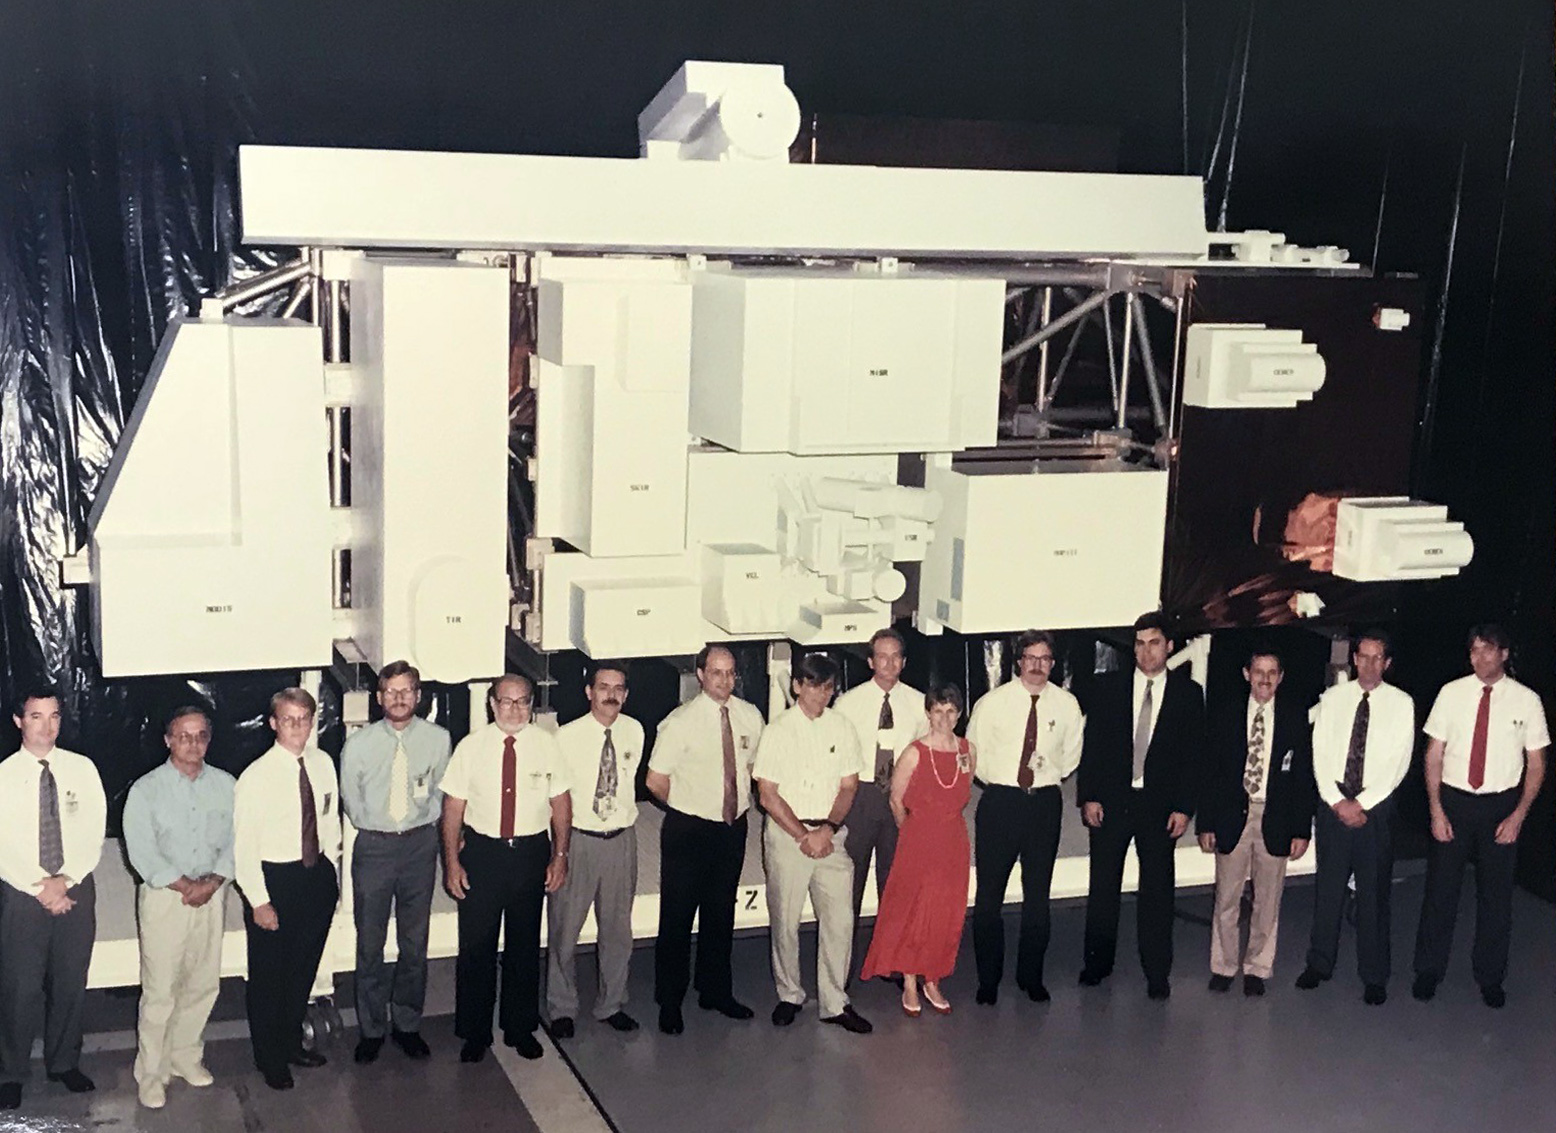 Members of the Terra design team stand in front of a true-to-size model of the satellite in the mid-1990s.